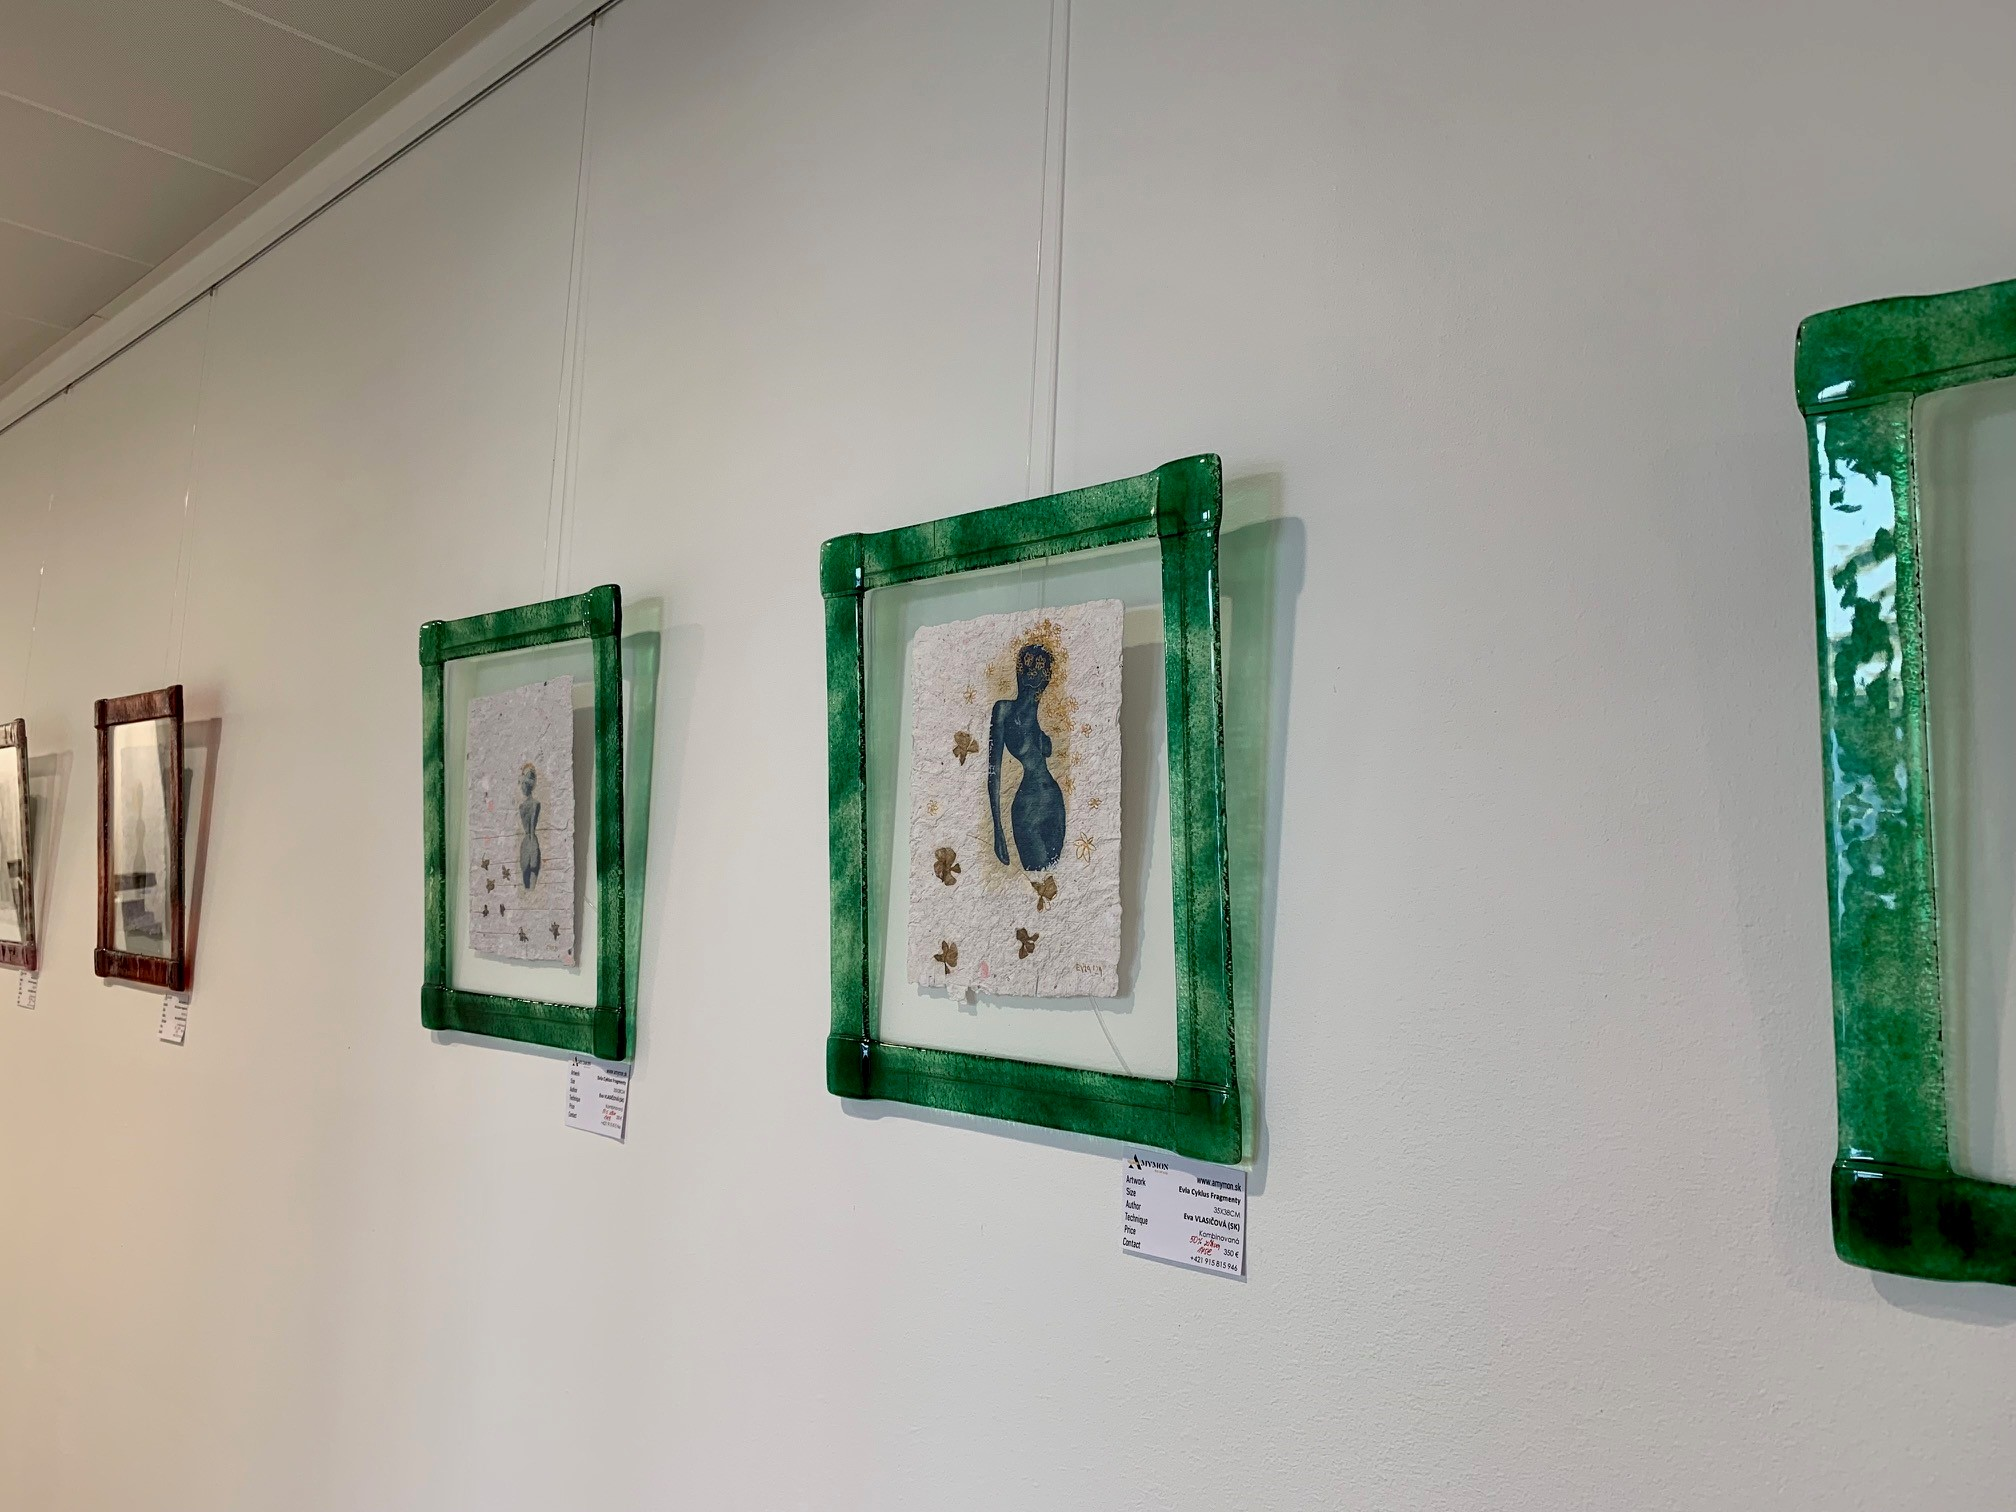 Accace Gallery